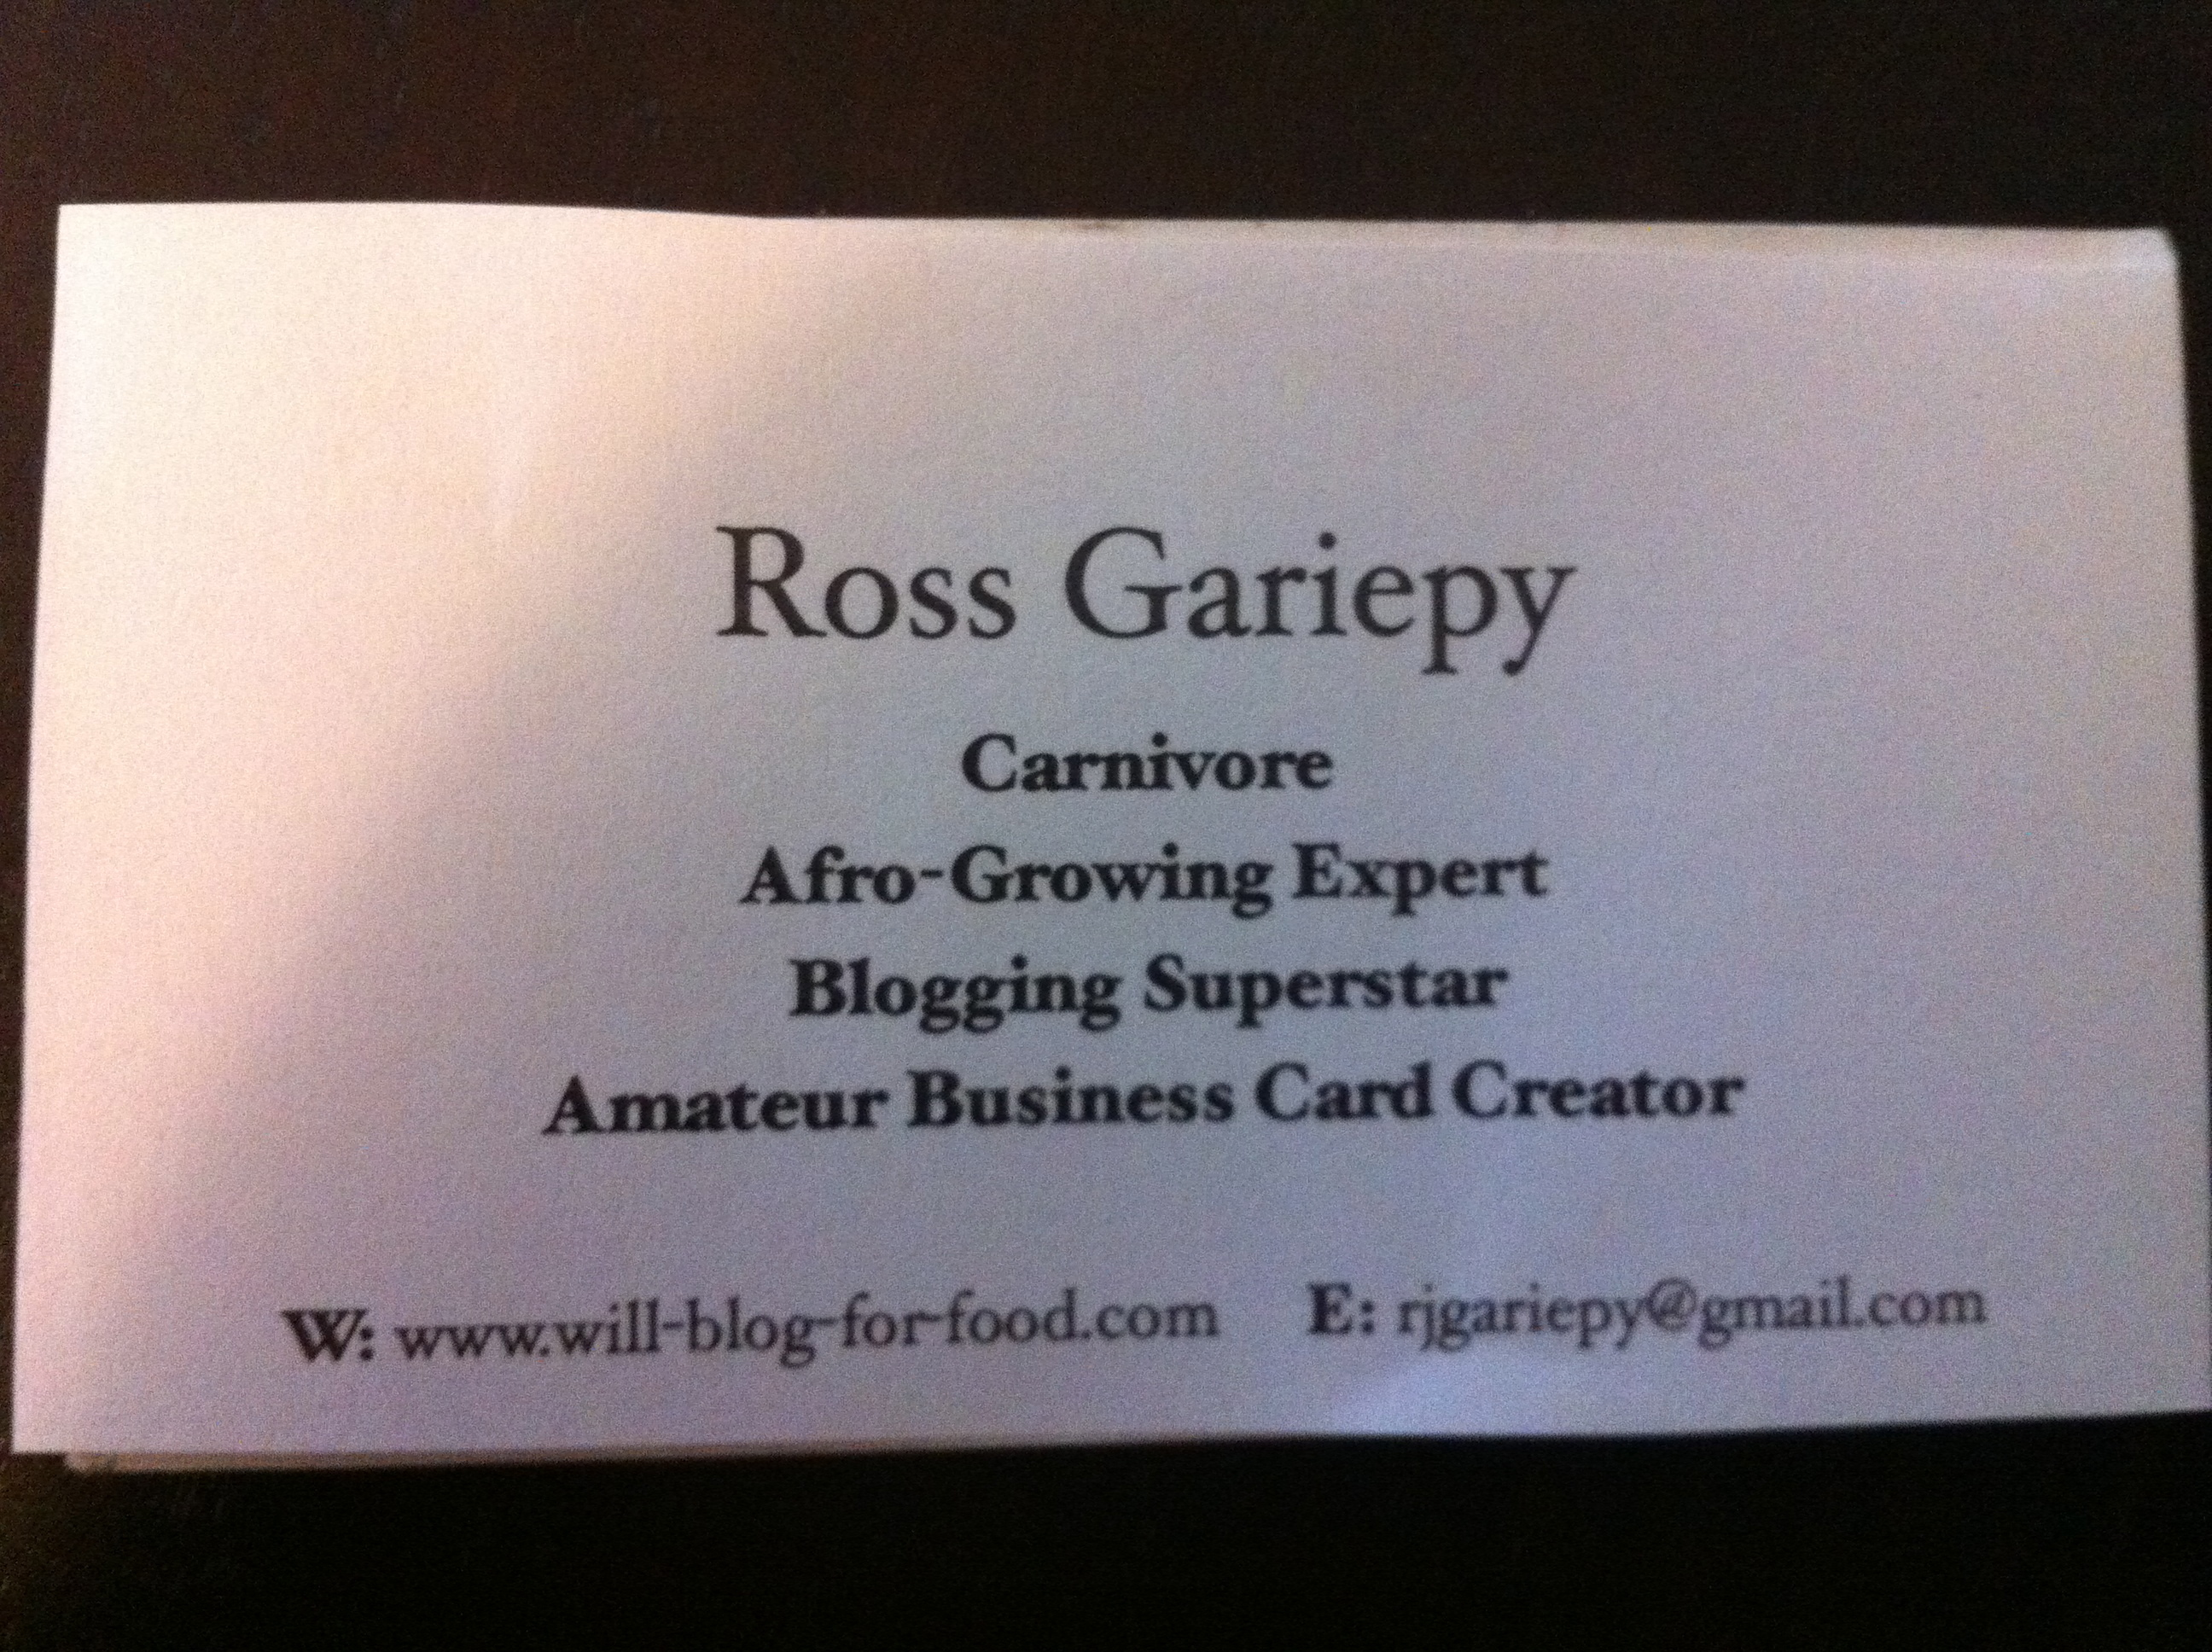 business cards for unemployed people willblogforfooddotcom 2800